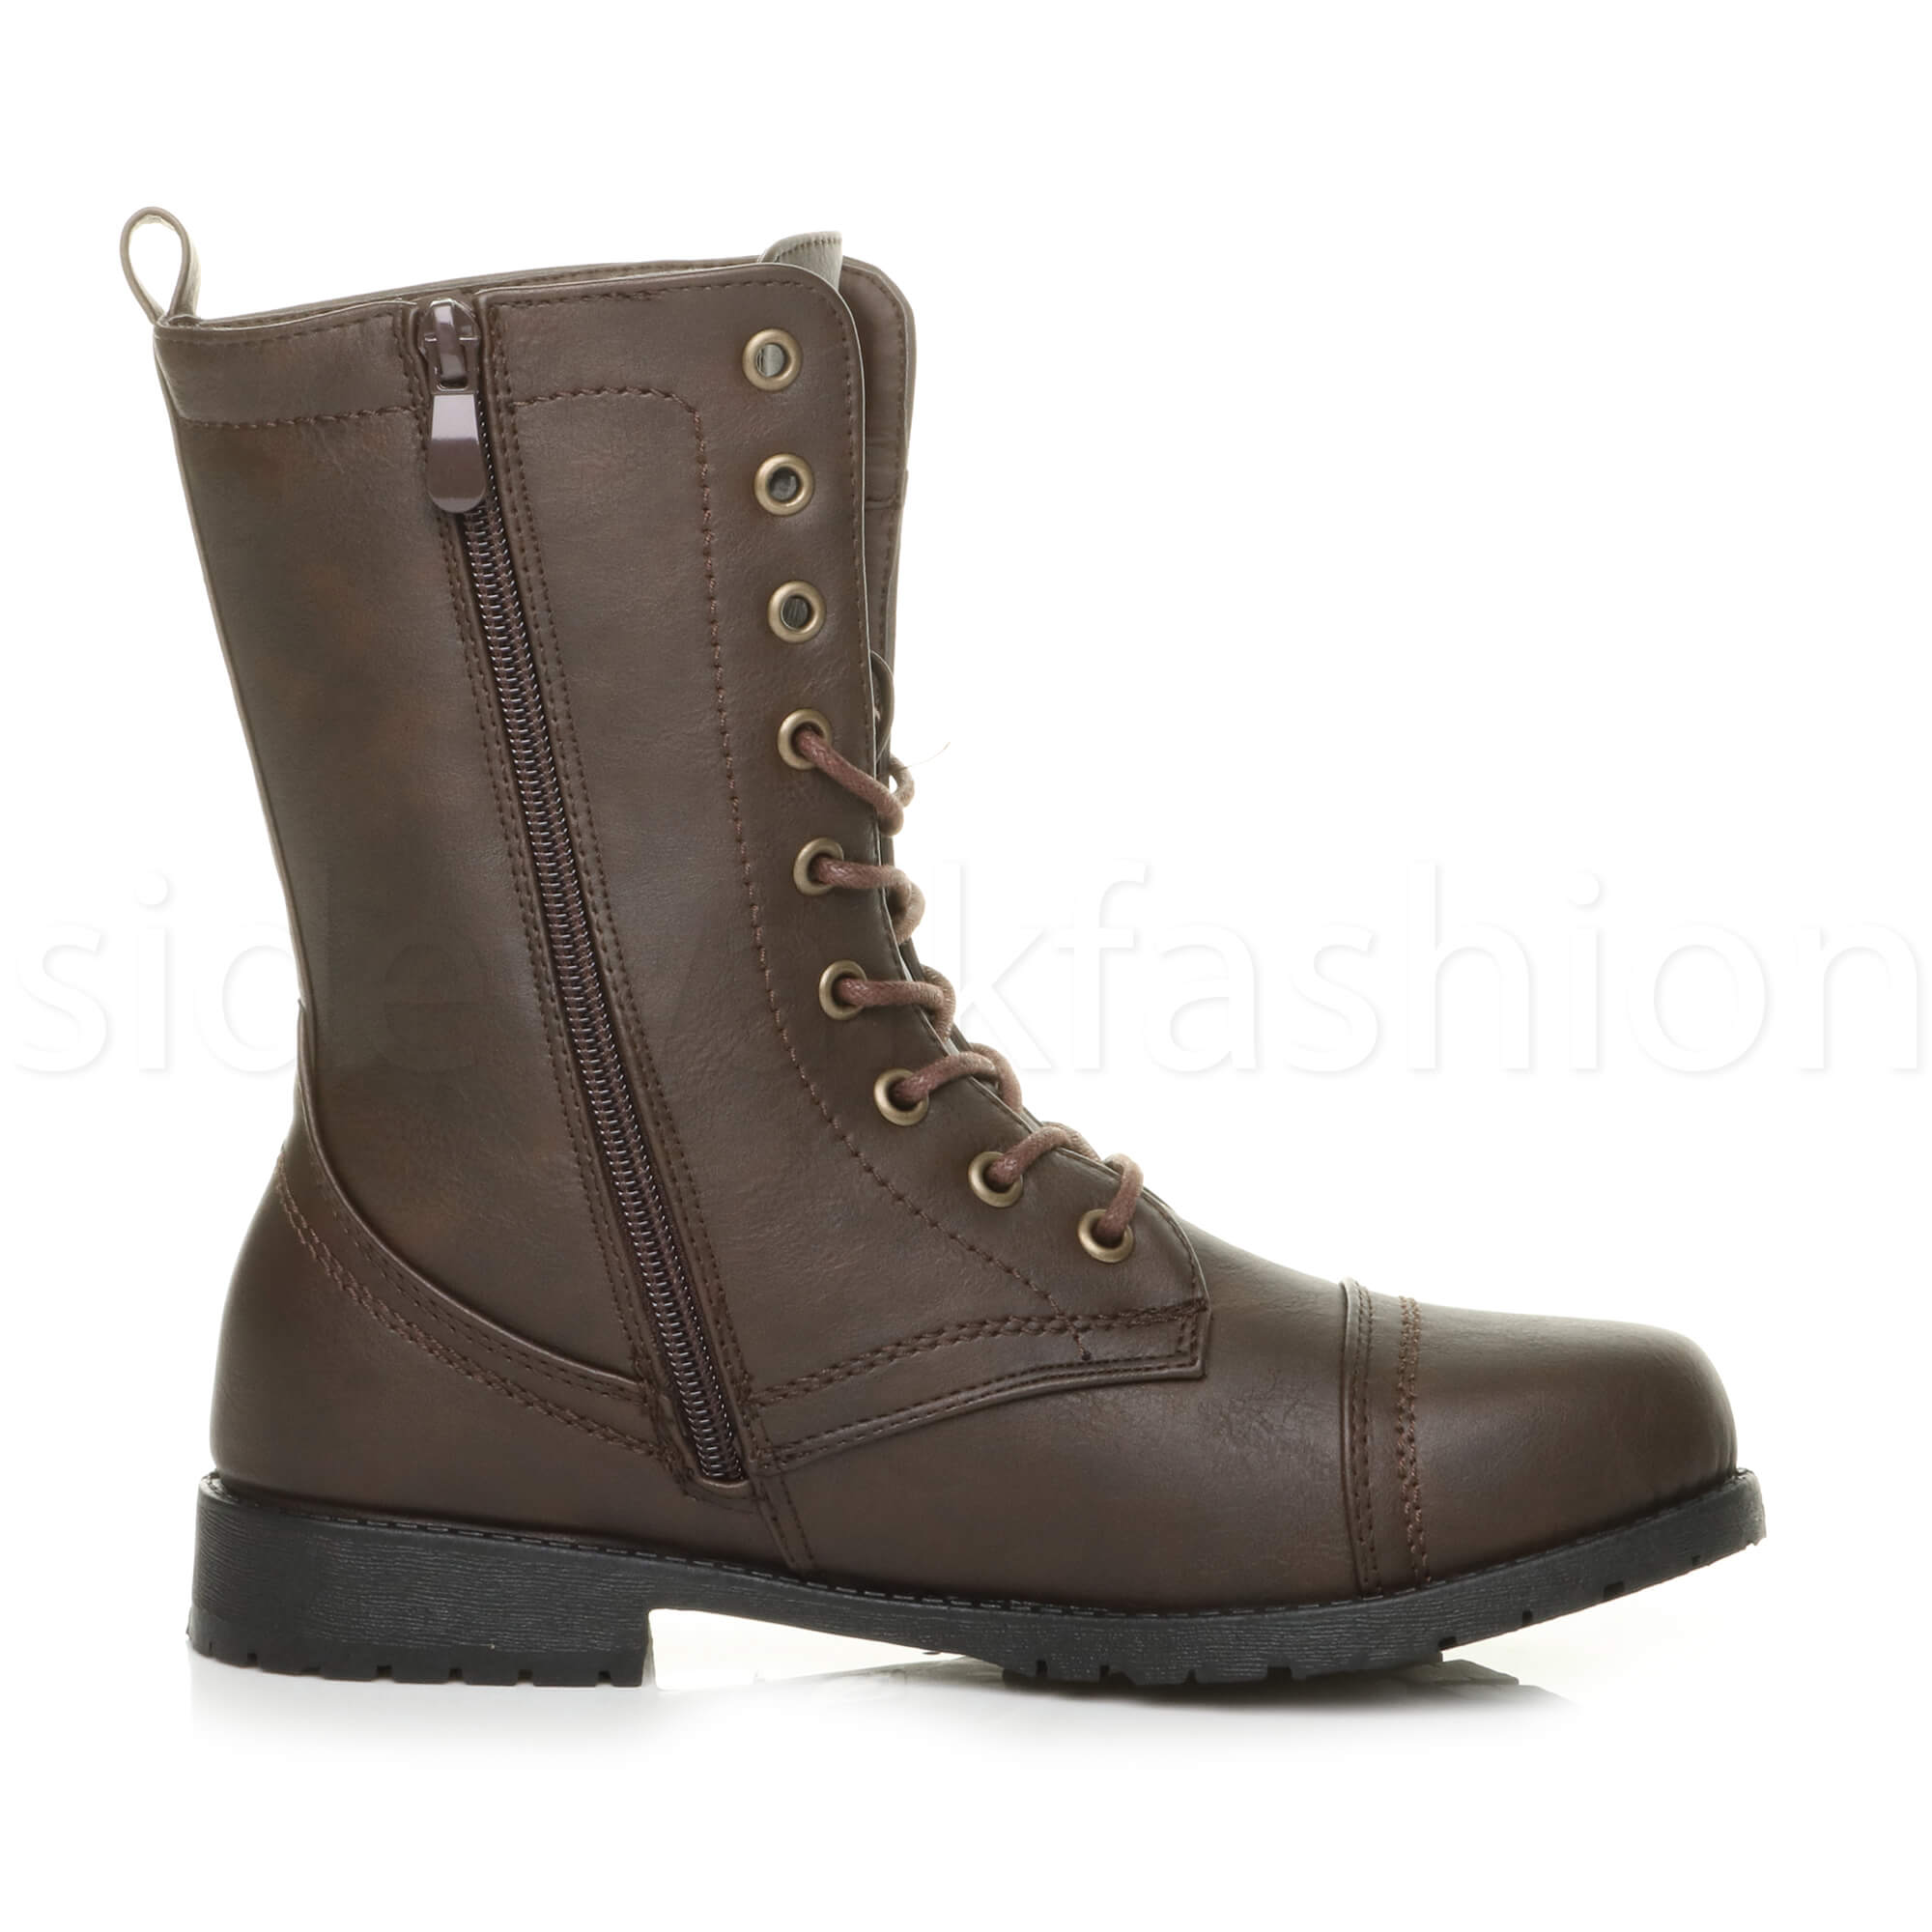 Womens-ladies-low-heel-flat-lace-up-zip-combat-biker-military-ankle-boots-size thumbnail 76